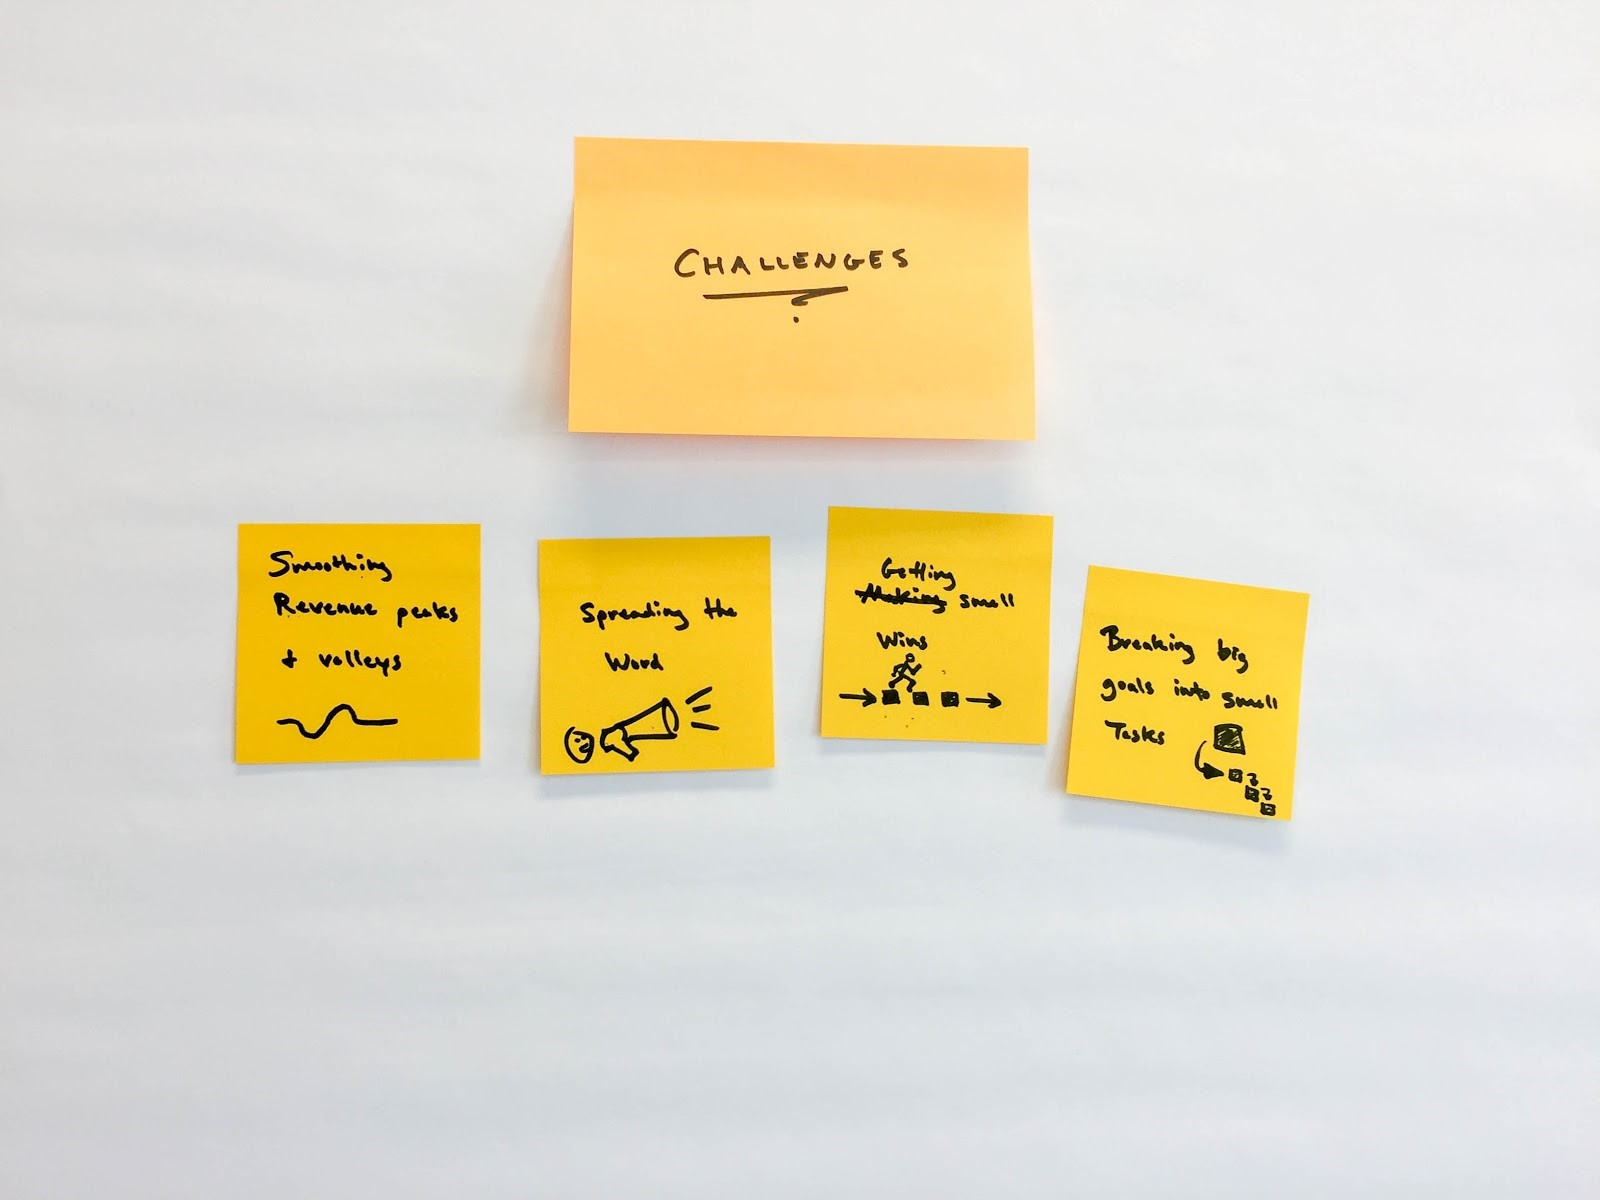 Challenges! Have your team write one challenge per sticky note. Fat markers and small sticky notes force you to be concise. Add visuals where possible to clarify meaning. And no talking.